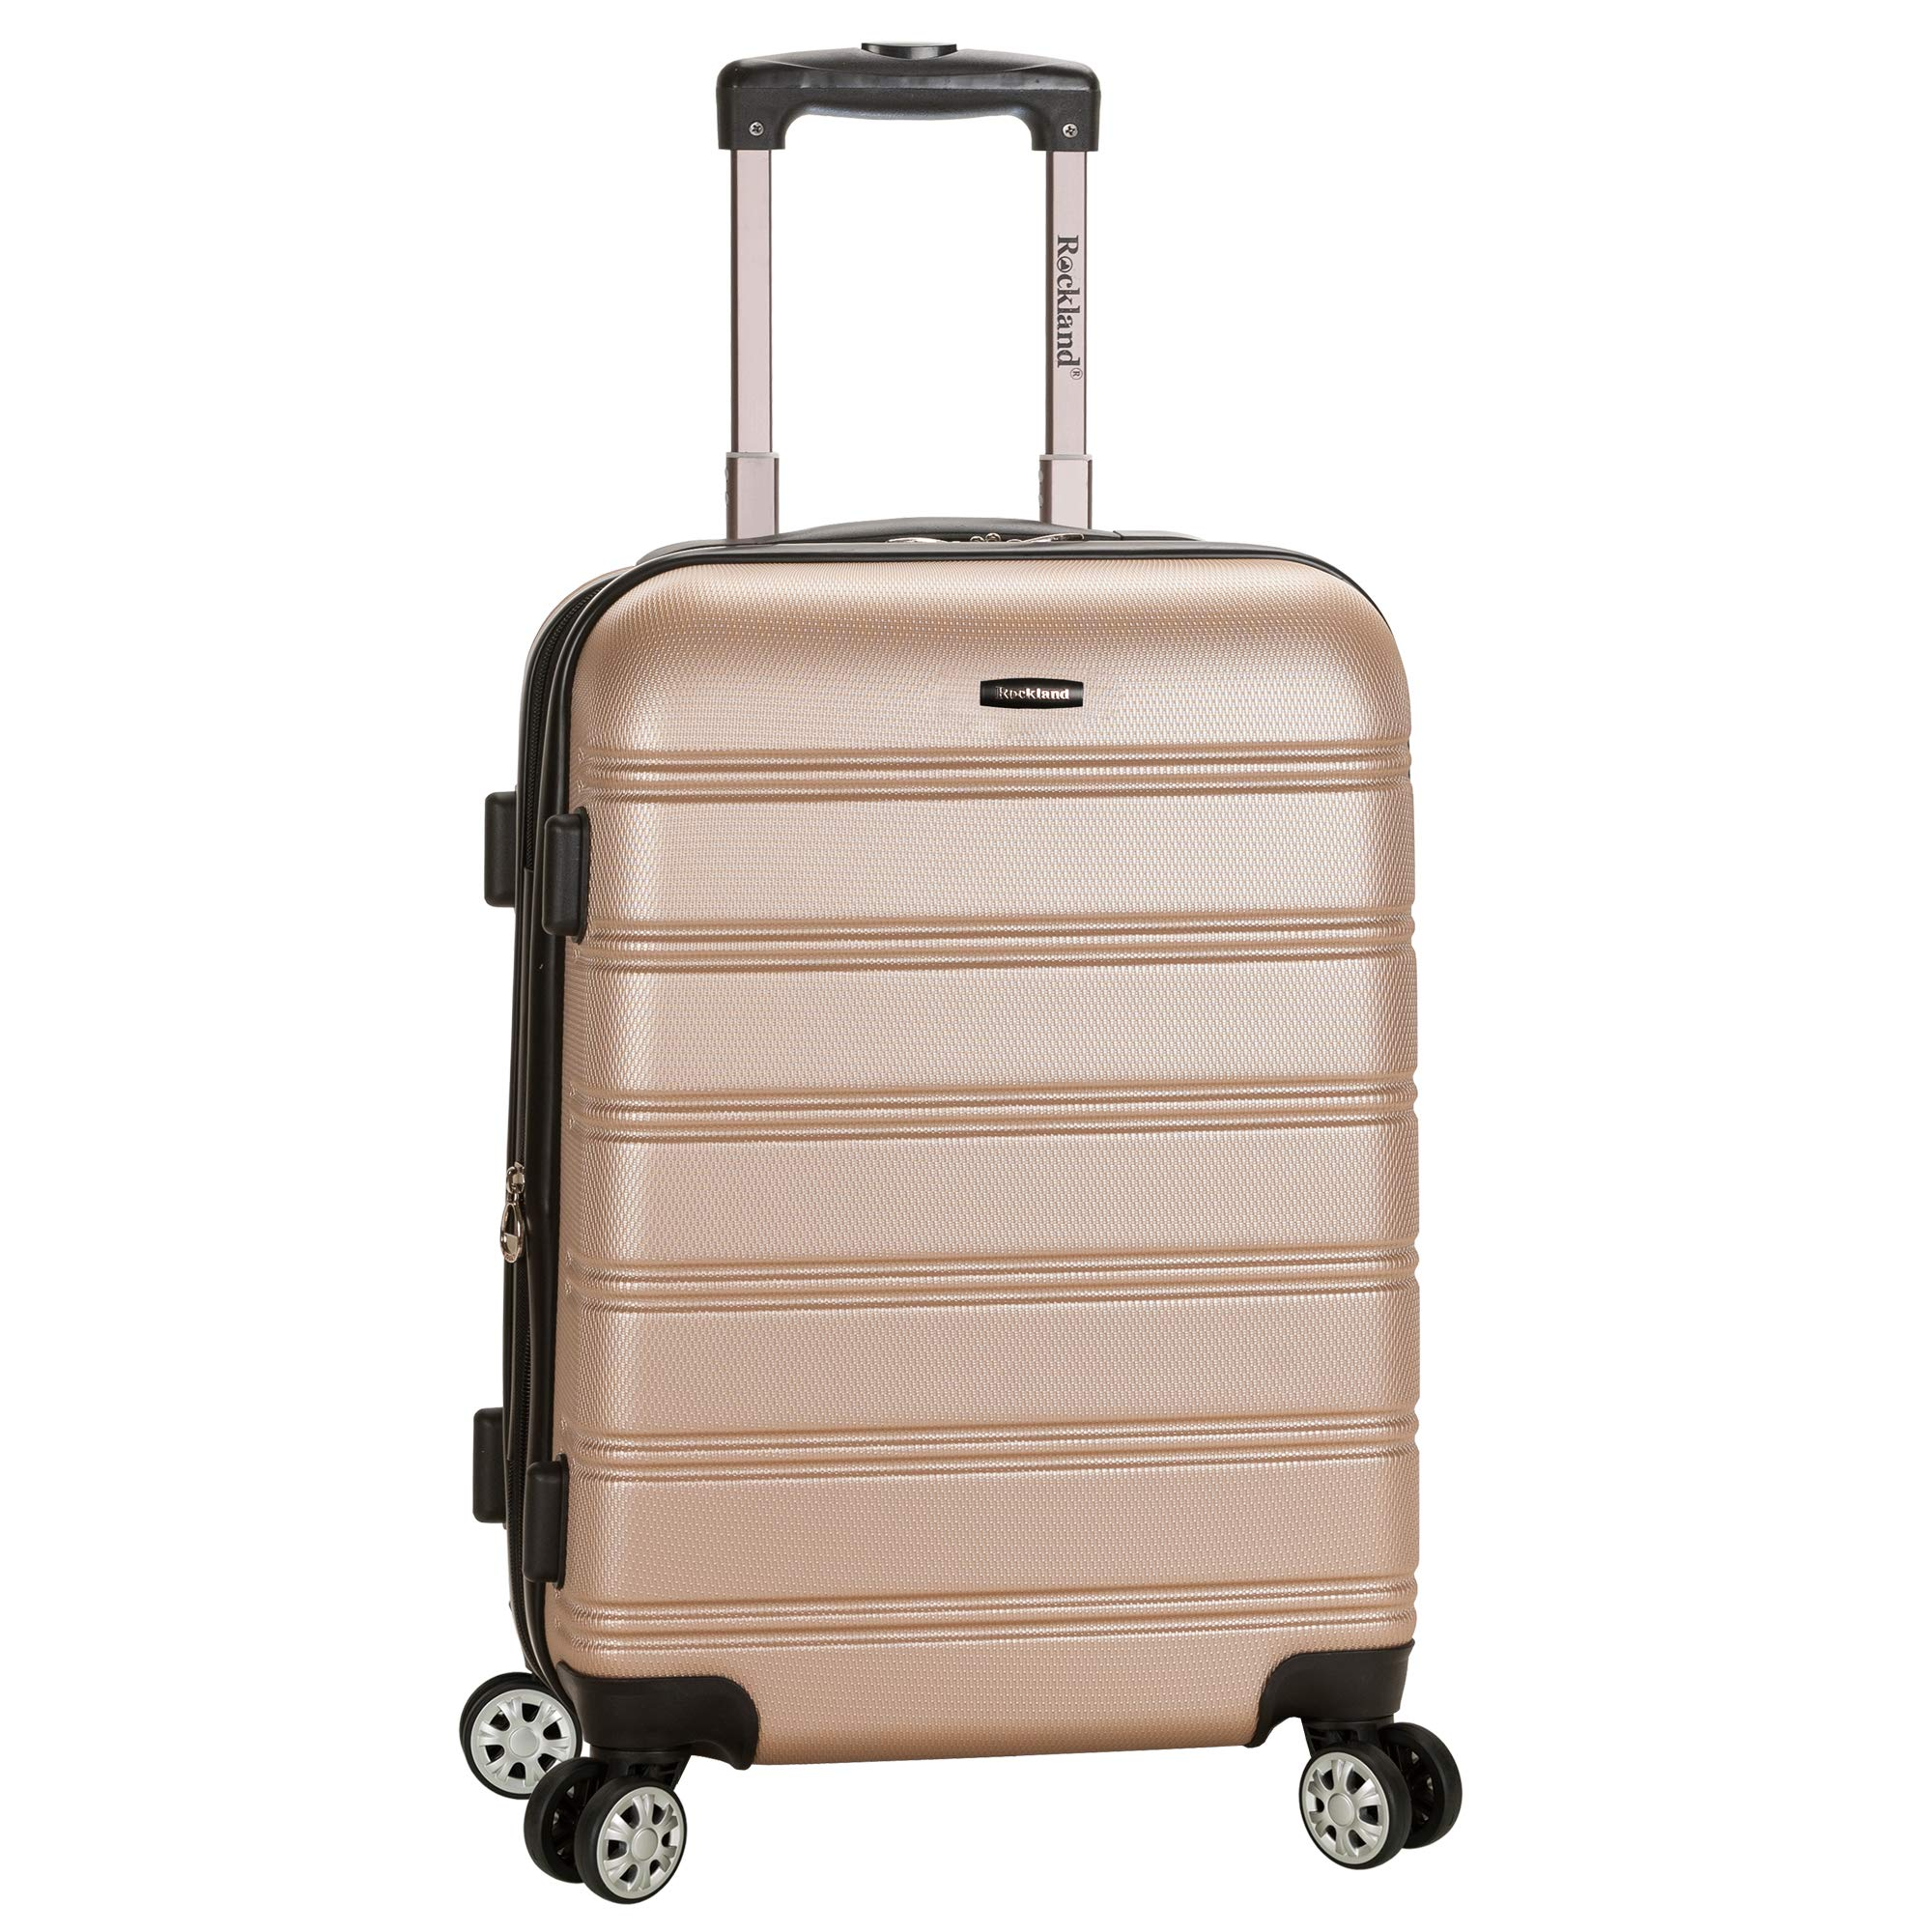 Rockland Luggage Melbourne Expandable Champagne